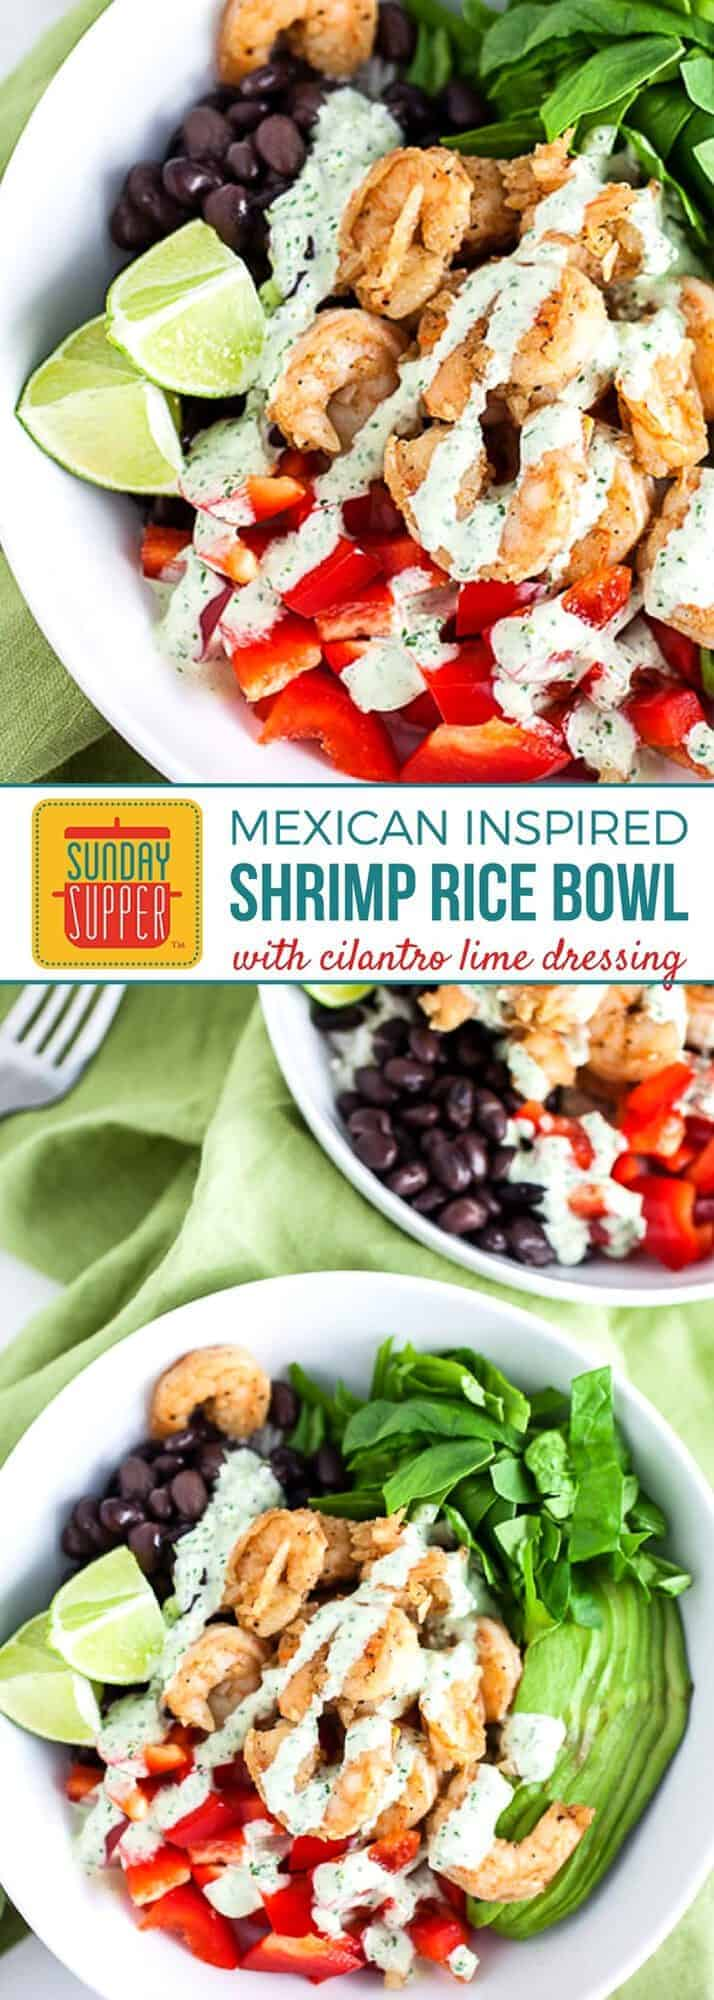 We LOVE digging into Healthy Rice Bowls! Our Mexican Rice Bowl with shrimp is a quick and easy meal perfect for lunch or dinner. It is full of vegetables & topped with a flavorful cilantro lime dressing. With a mix of grains, vegetables, and protein, rice bowls are a hearty and flavorful meal the whole family will enjoy. #HealthyRiceBowls #MexicanRice #ShrimpRecipes #EasyRecipes #SundaySupper